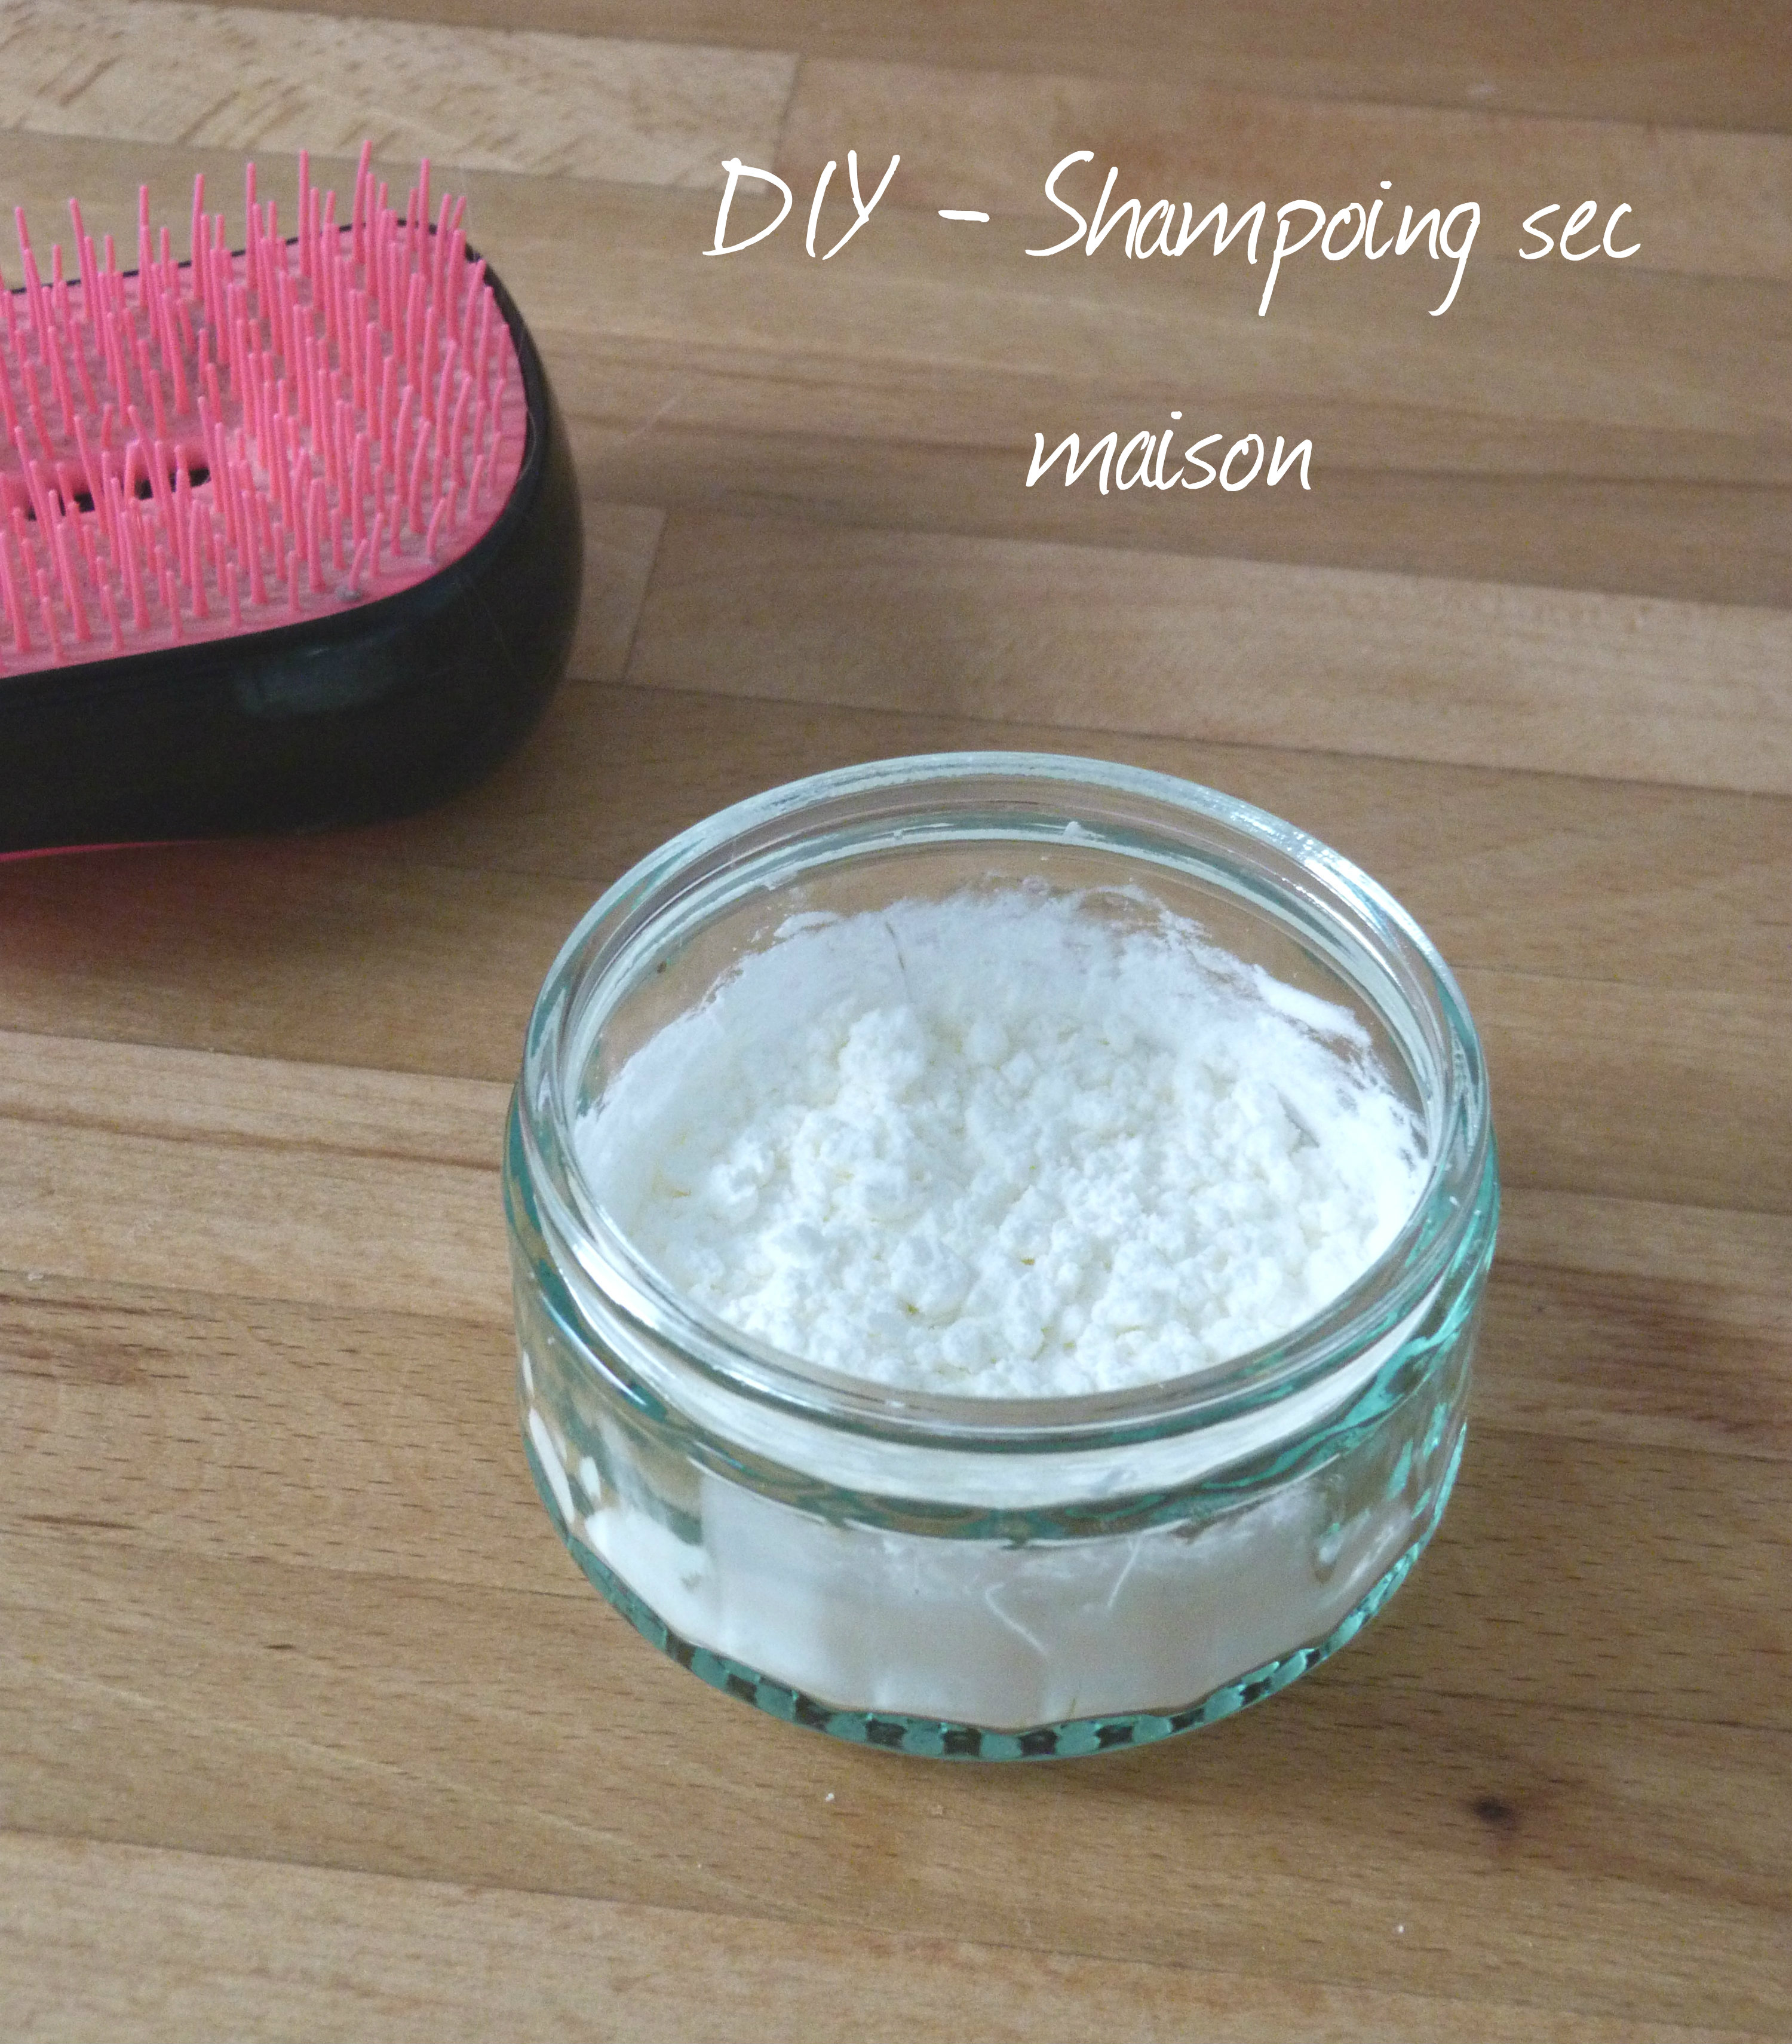 DIY Shampoing sec maison - Prettylittletruth - Blog lifestyle, voyage, mode & cuisine